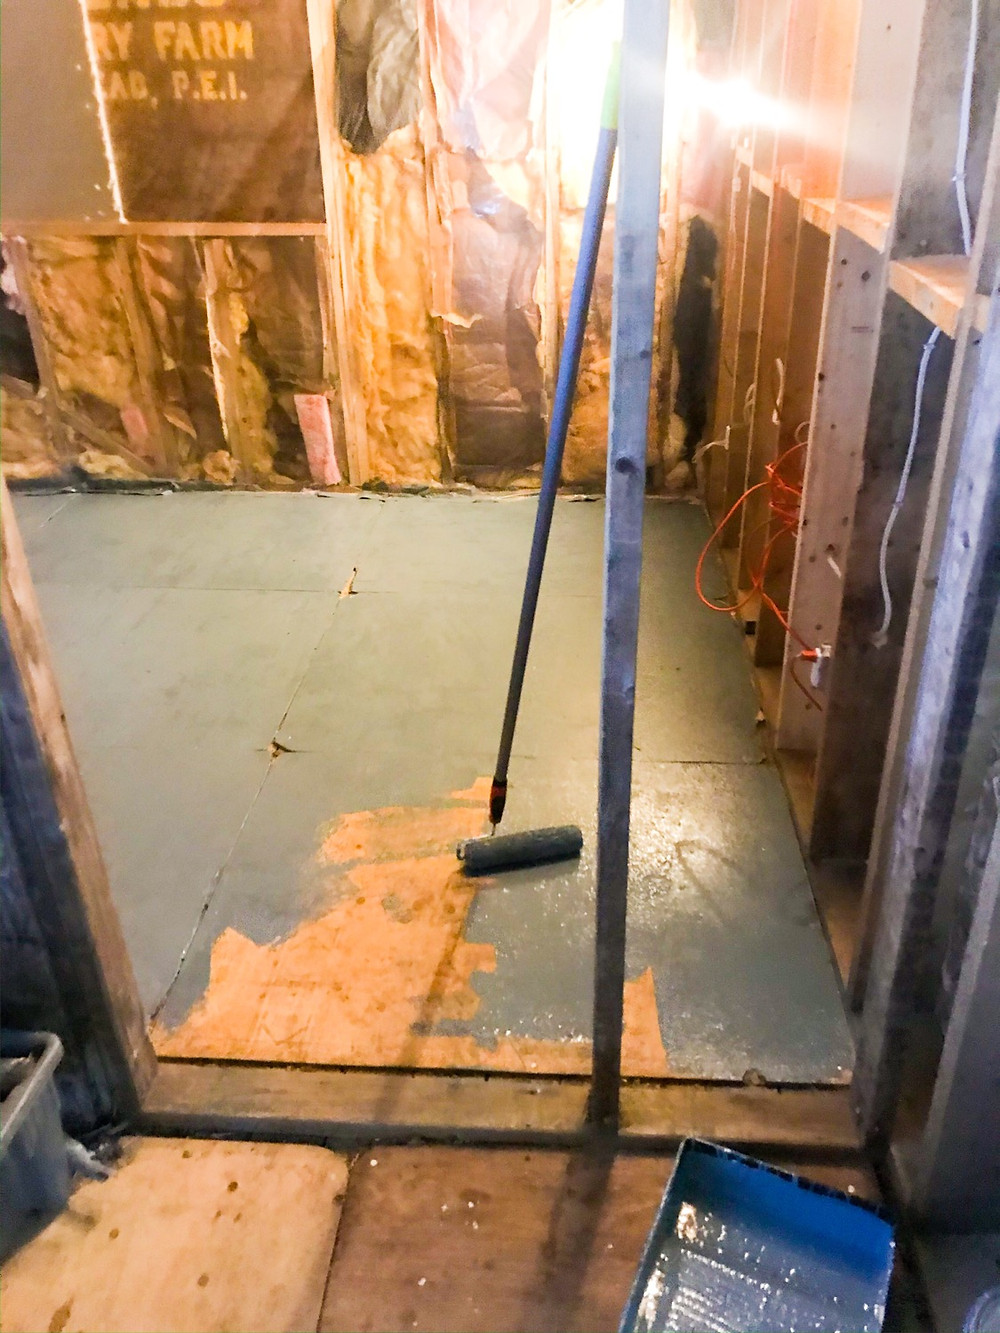 Painting over rough plywood floor to make the surface cleaner and smoother